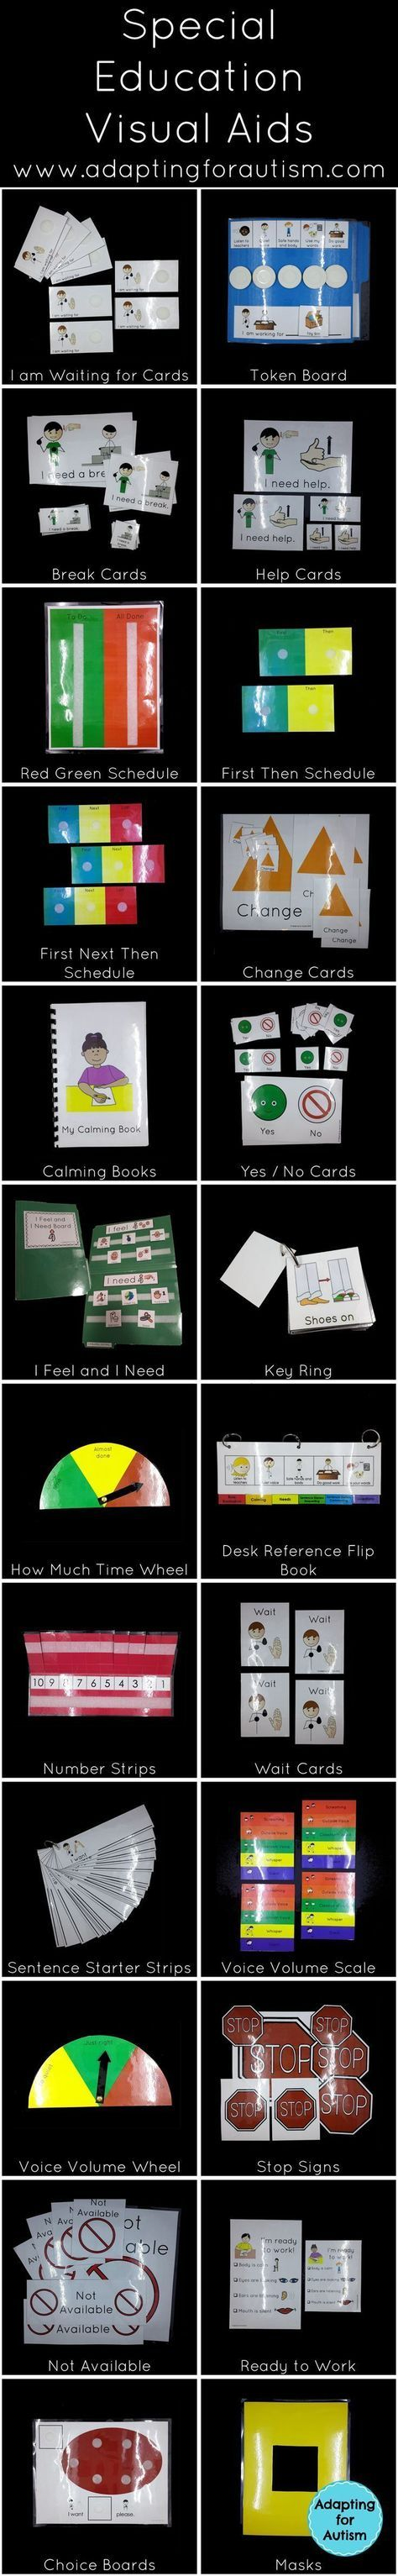 Twenty-four visual aids that can be used to support your special education students during any setting or subject. Using visual supports particularly with students with autism is a best practice and can increase independence and decrease transition diffic